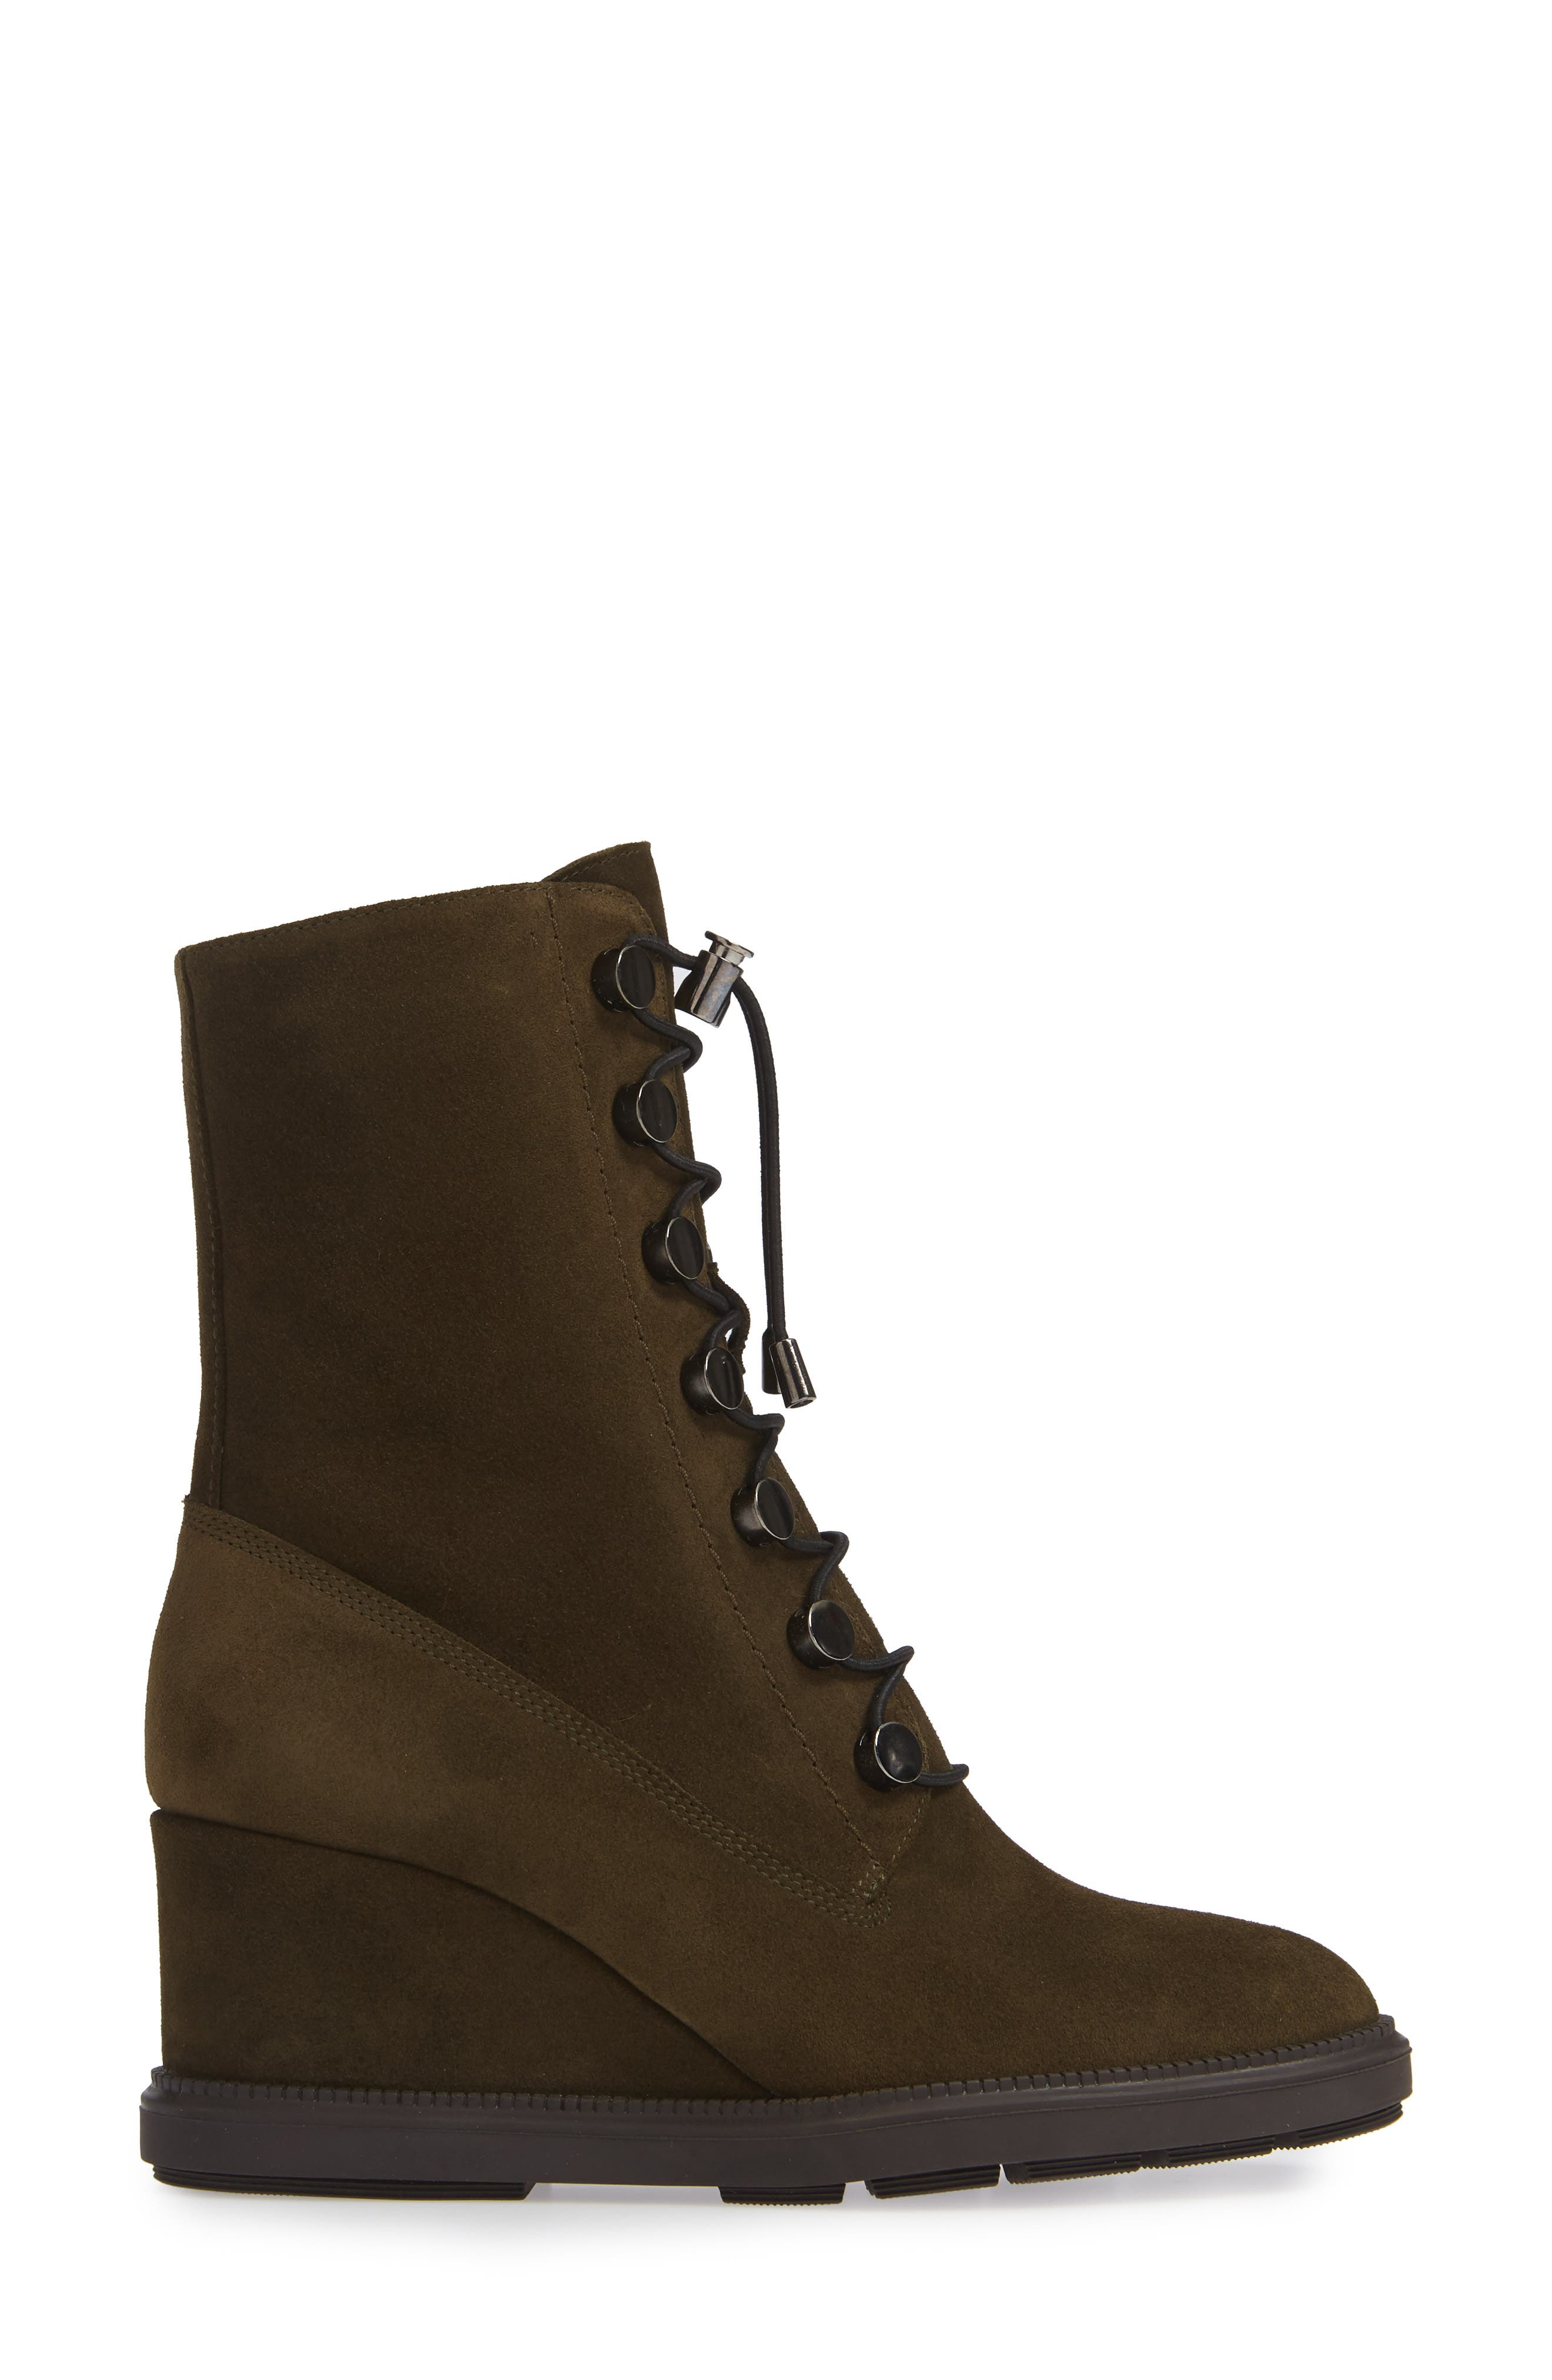 Campbell Wedge Boot,                             Alternate thumbnail 3, color,                             HERB SUEDE